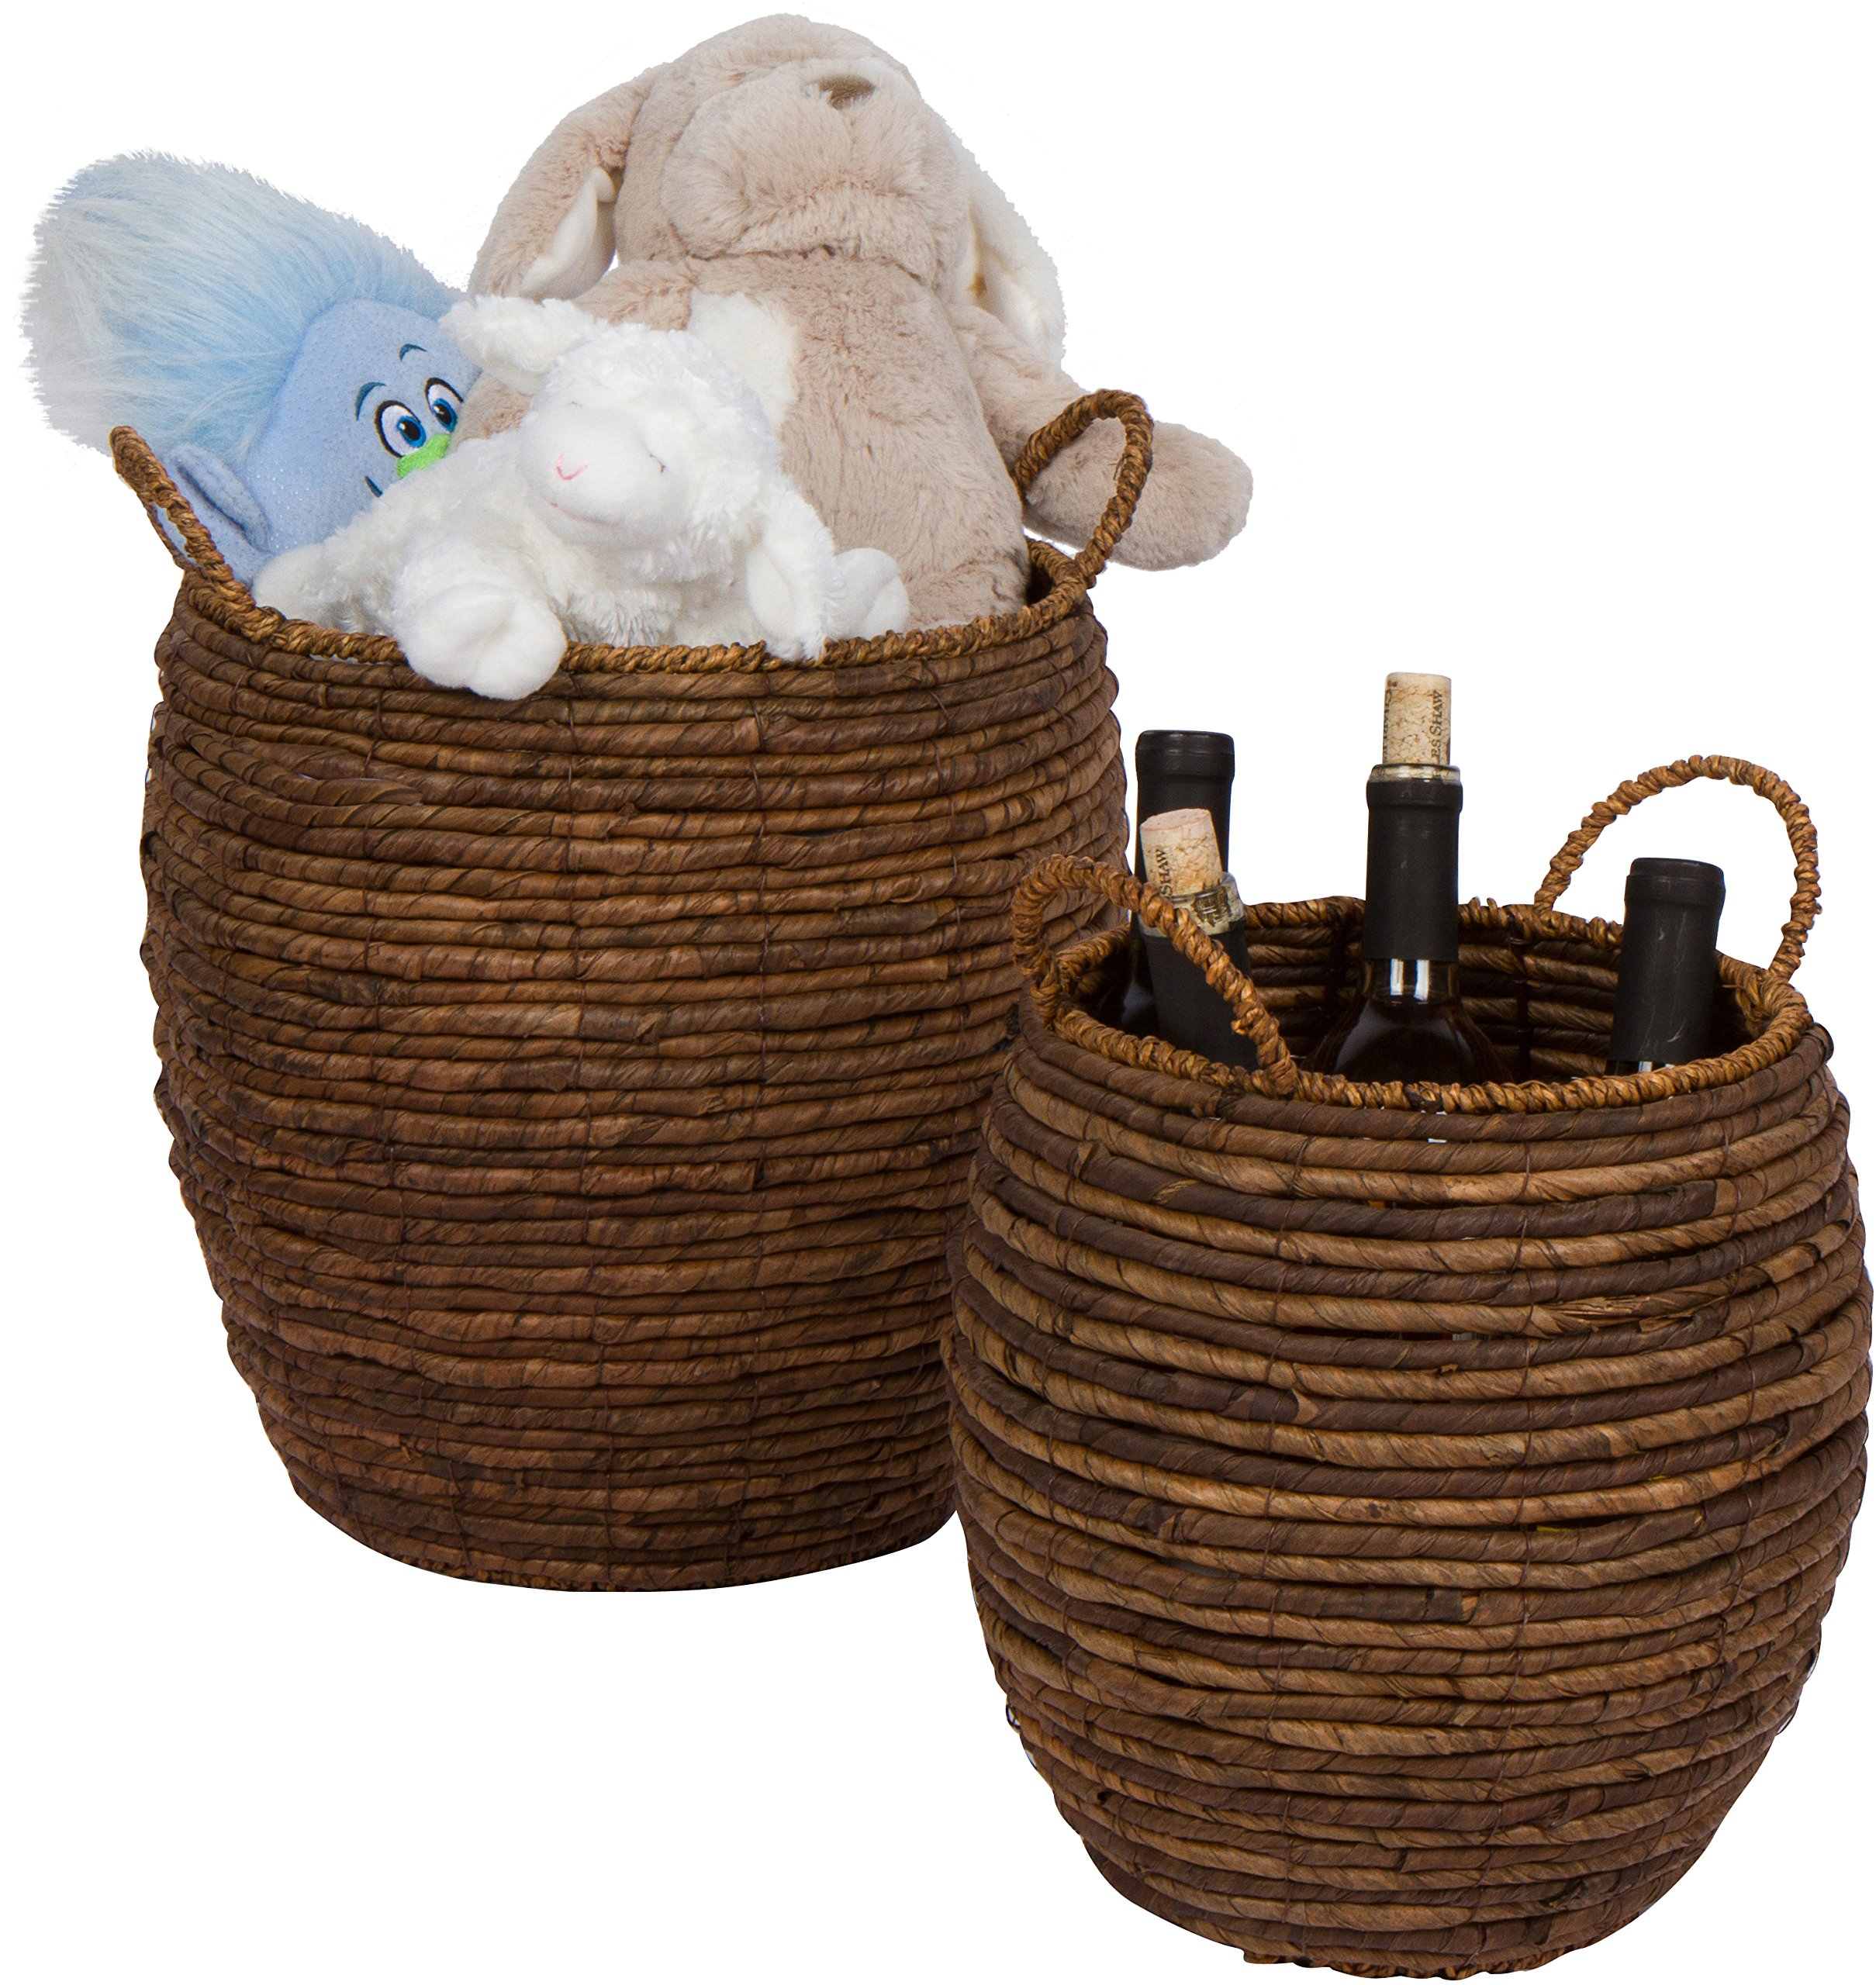 Trademark Innovations Woven Wicker Decorative Storage Baskets with Handles - Set of 2 by by Trademark Innovations